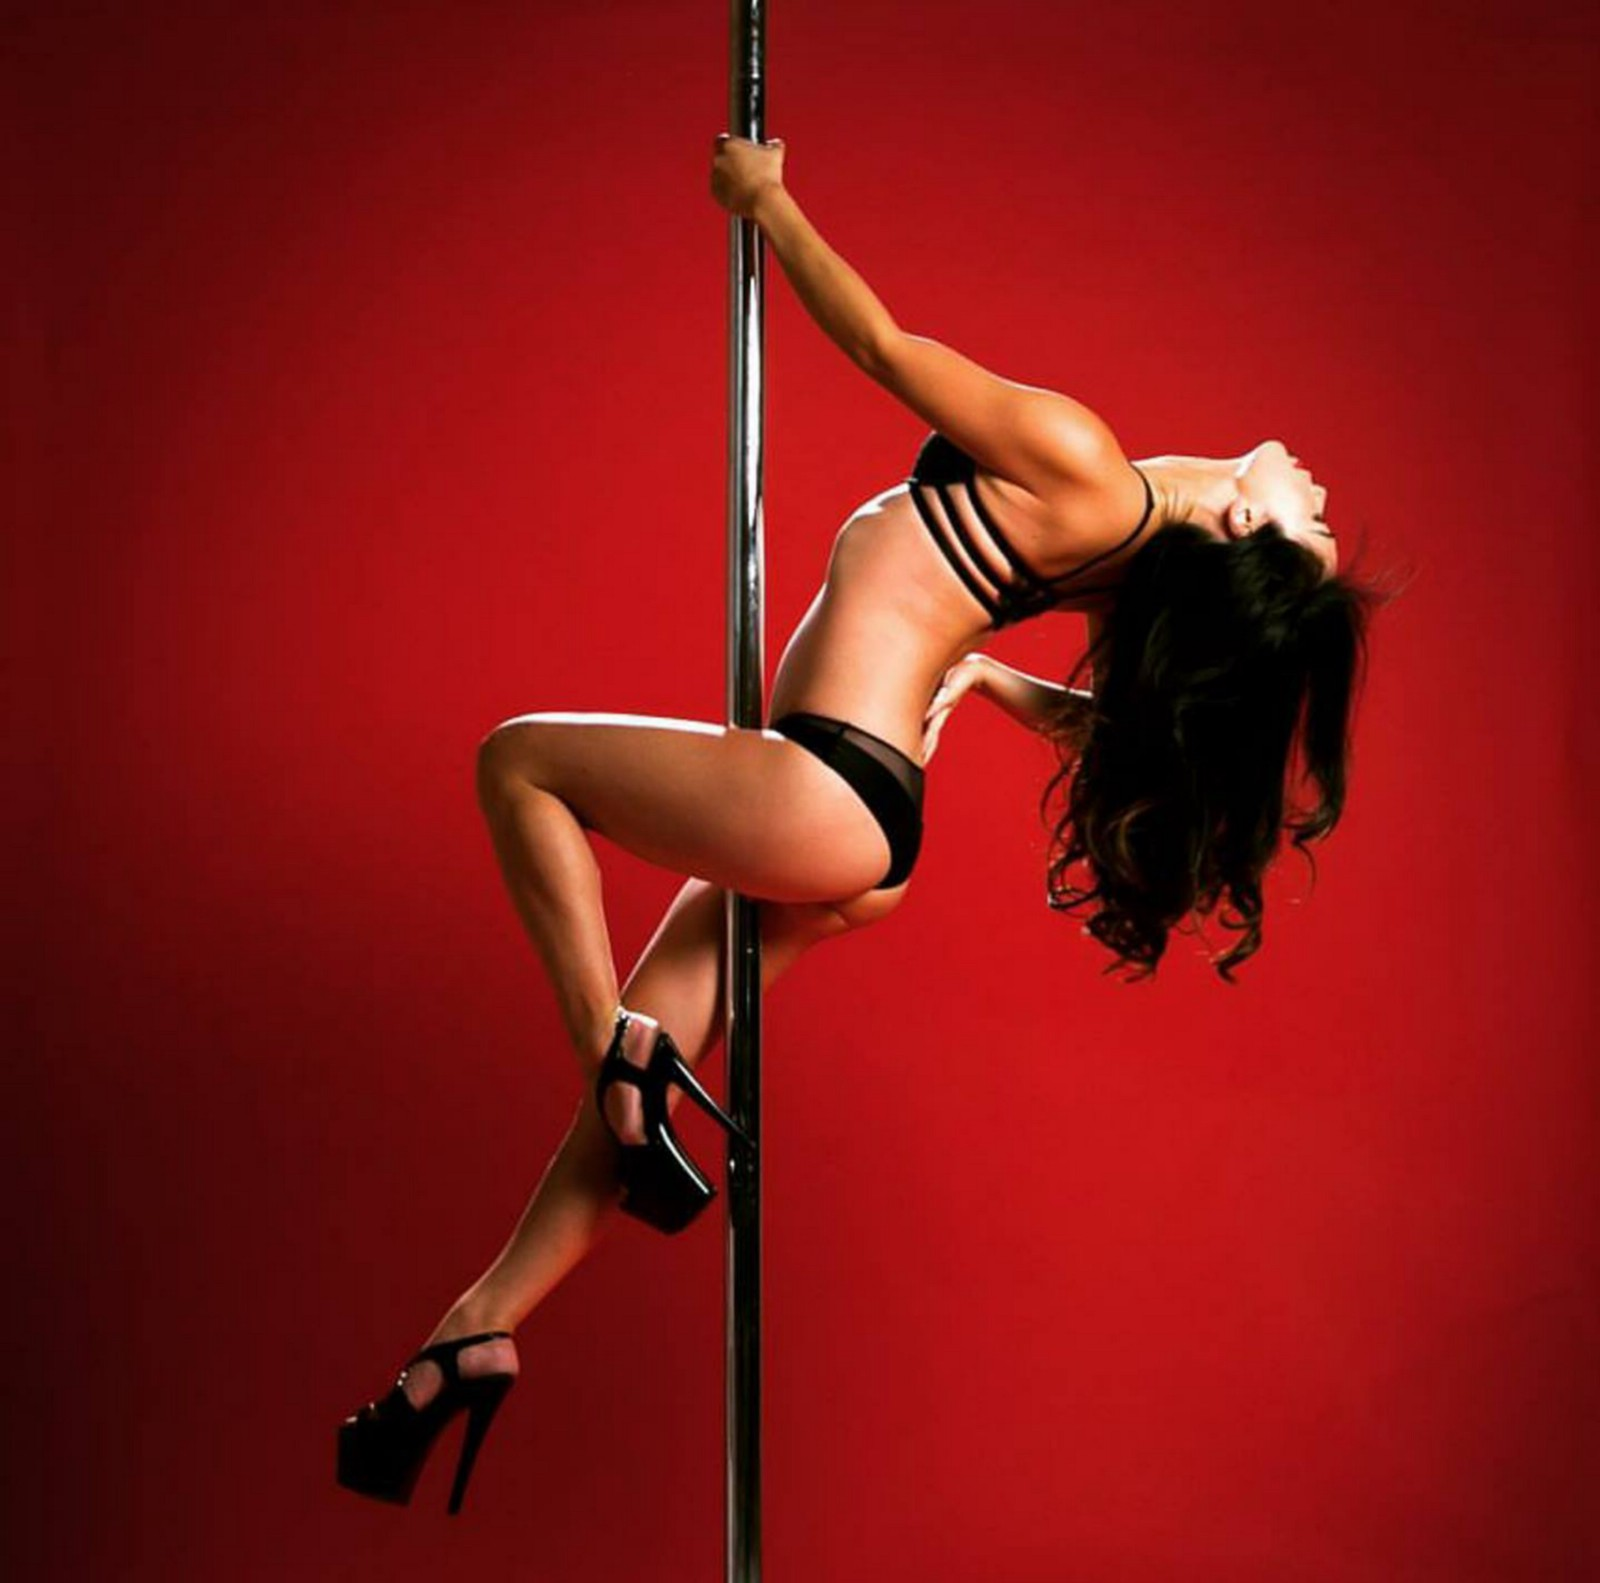 Strippers reveal their favorite songs to strip to